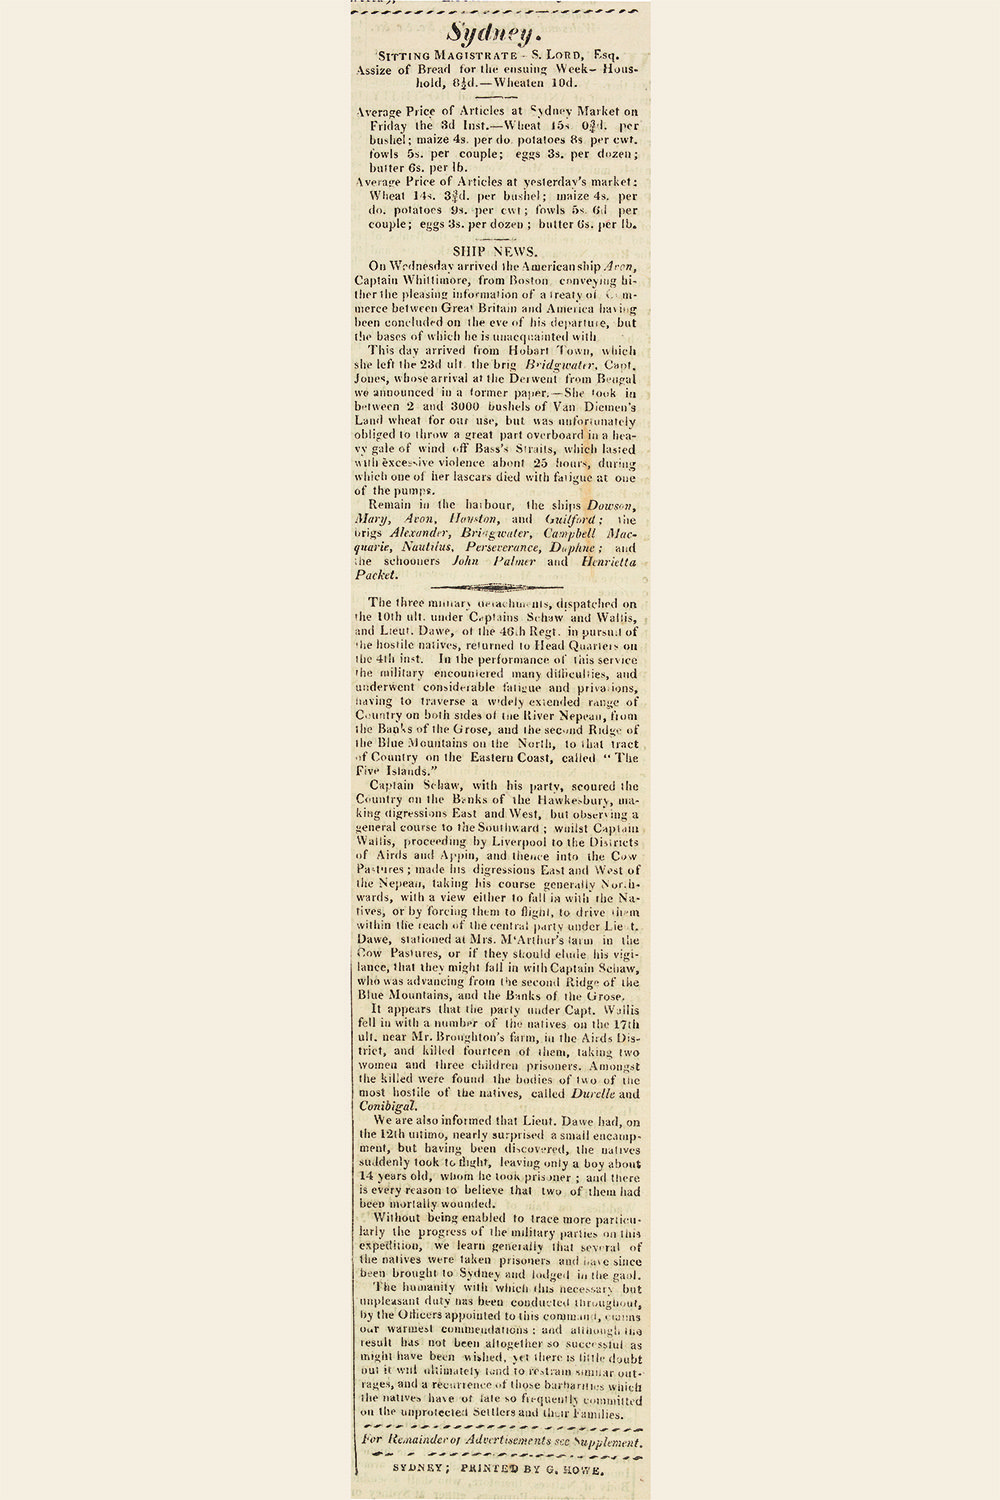 Report of the Appin Massacre